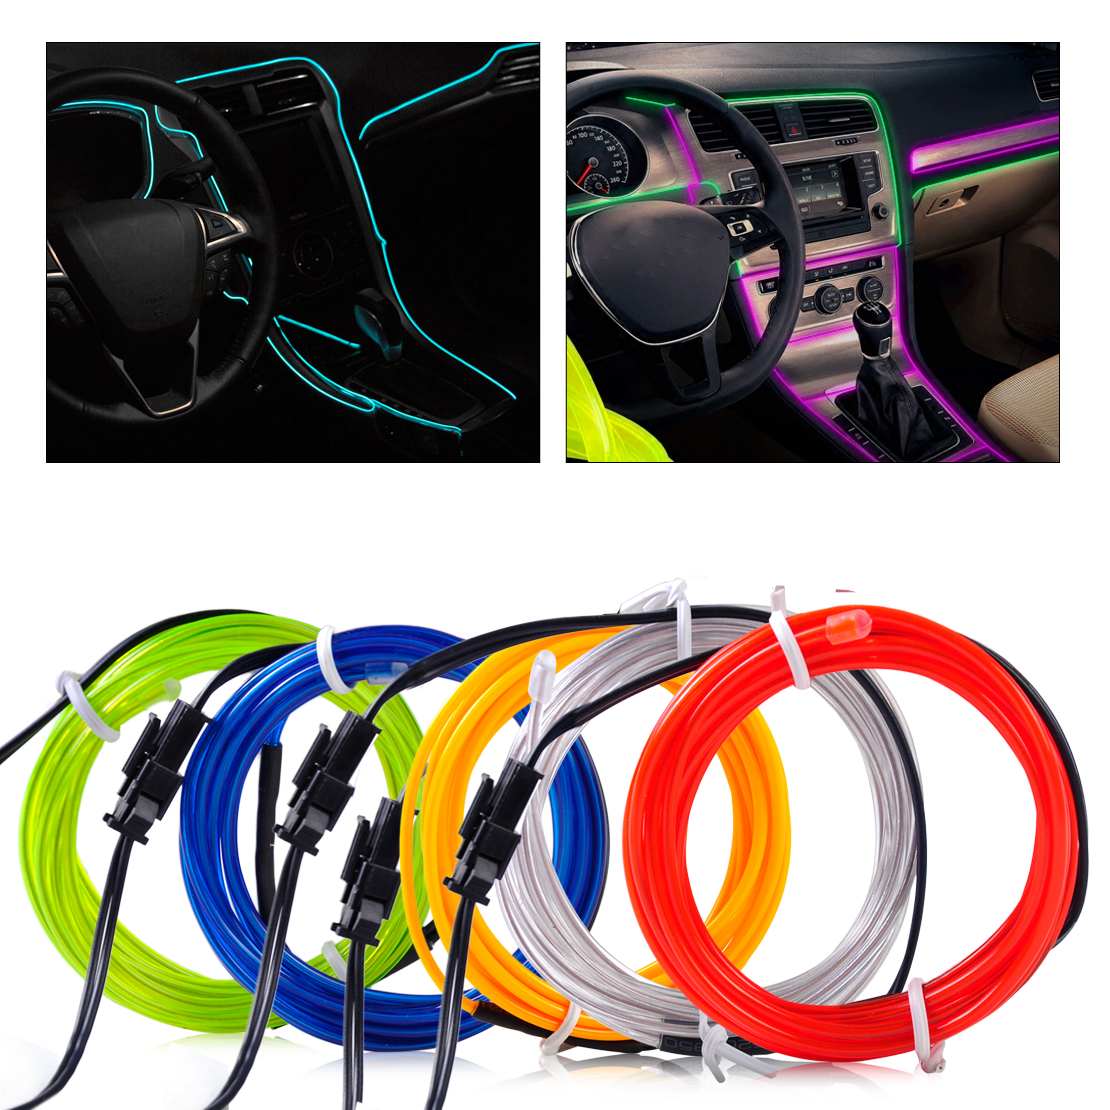 1x new 3mm 2m el wire flexible stylings car interior decor fluorescent neon light strip cold for How to decorate your car interior